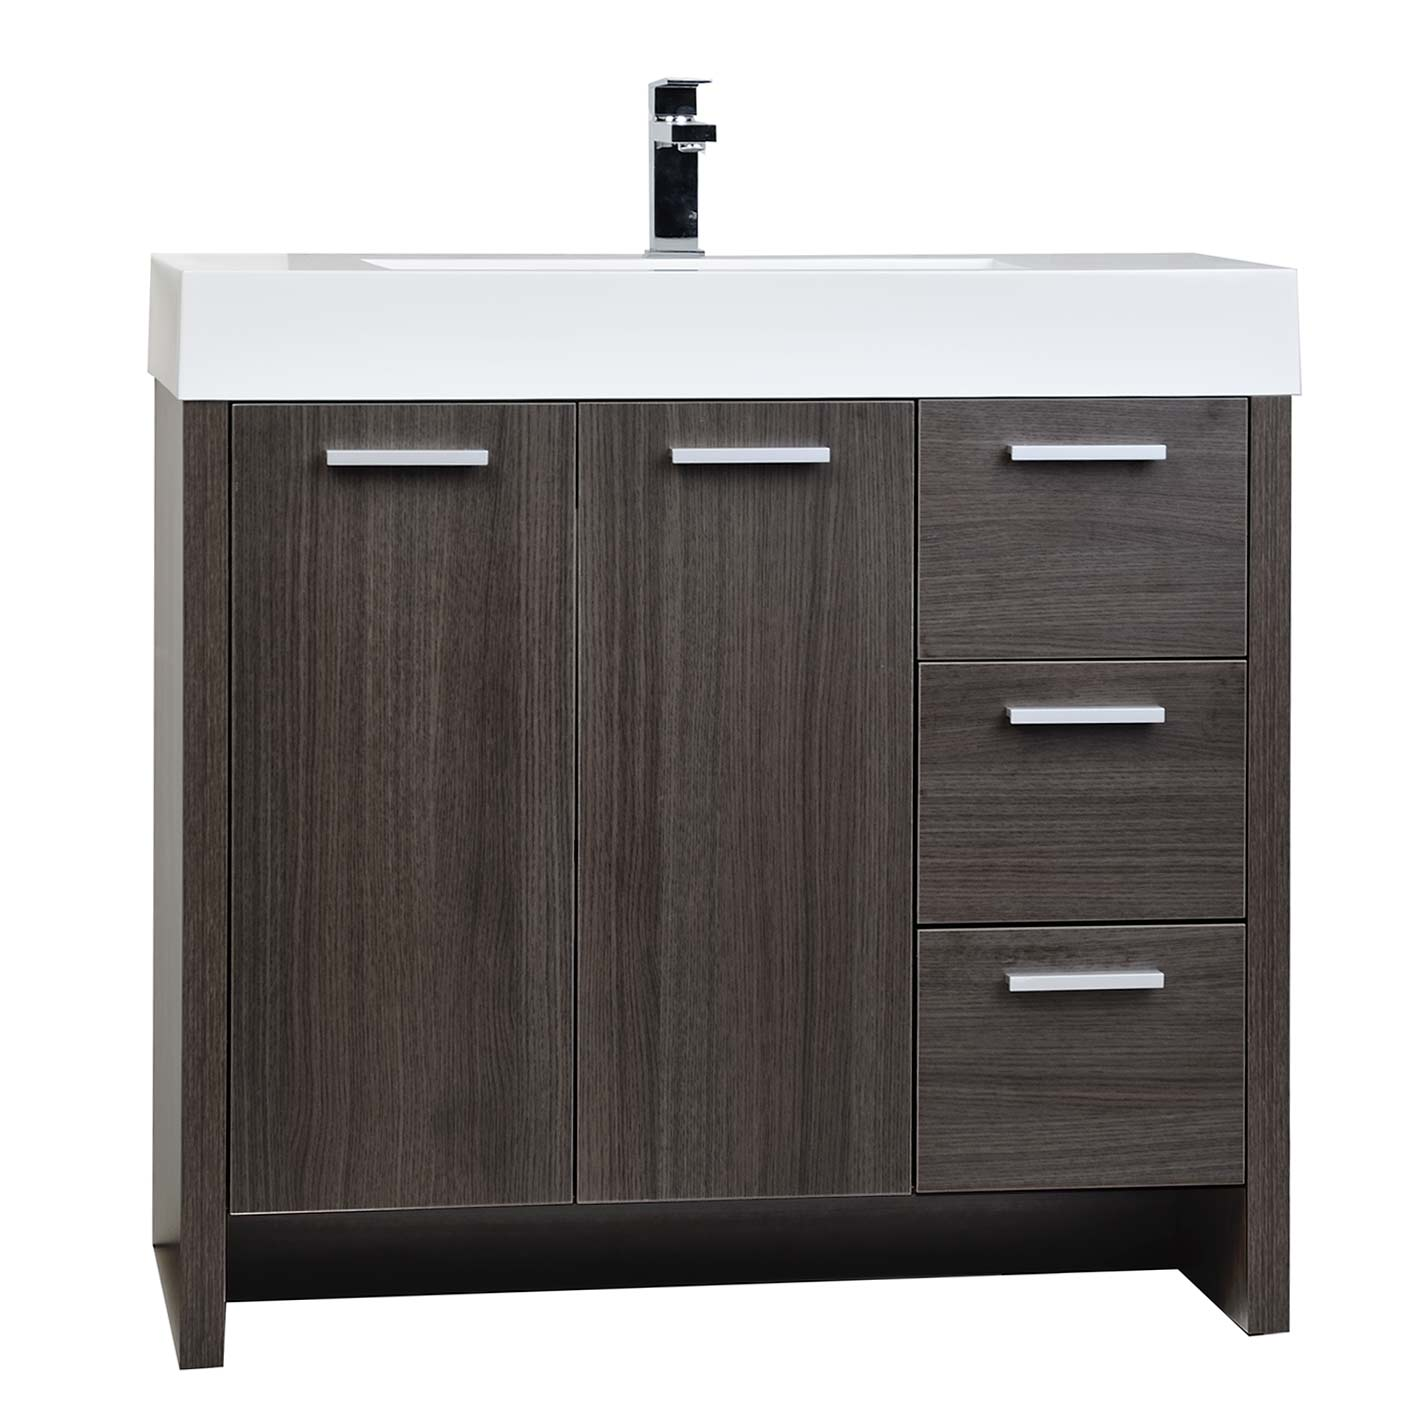 Buy 35 5 modern bathroom vanity grey oak finish tn ly900 for Modern contemporary bathroom vanities